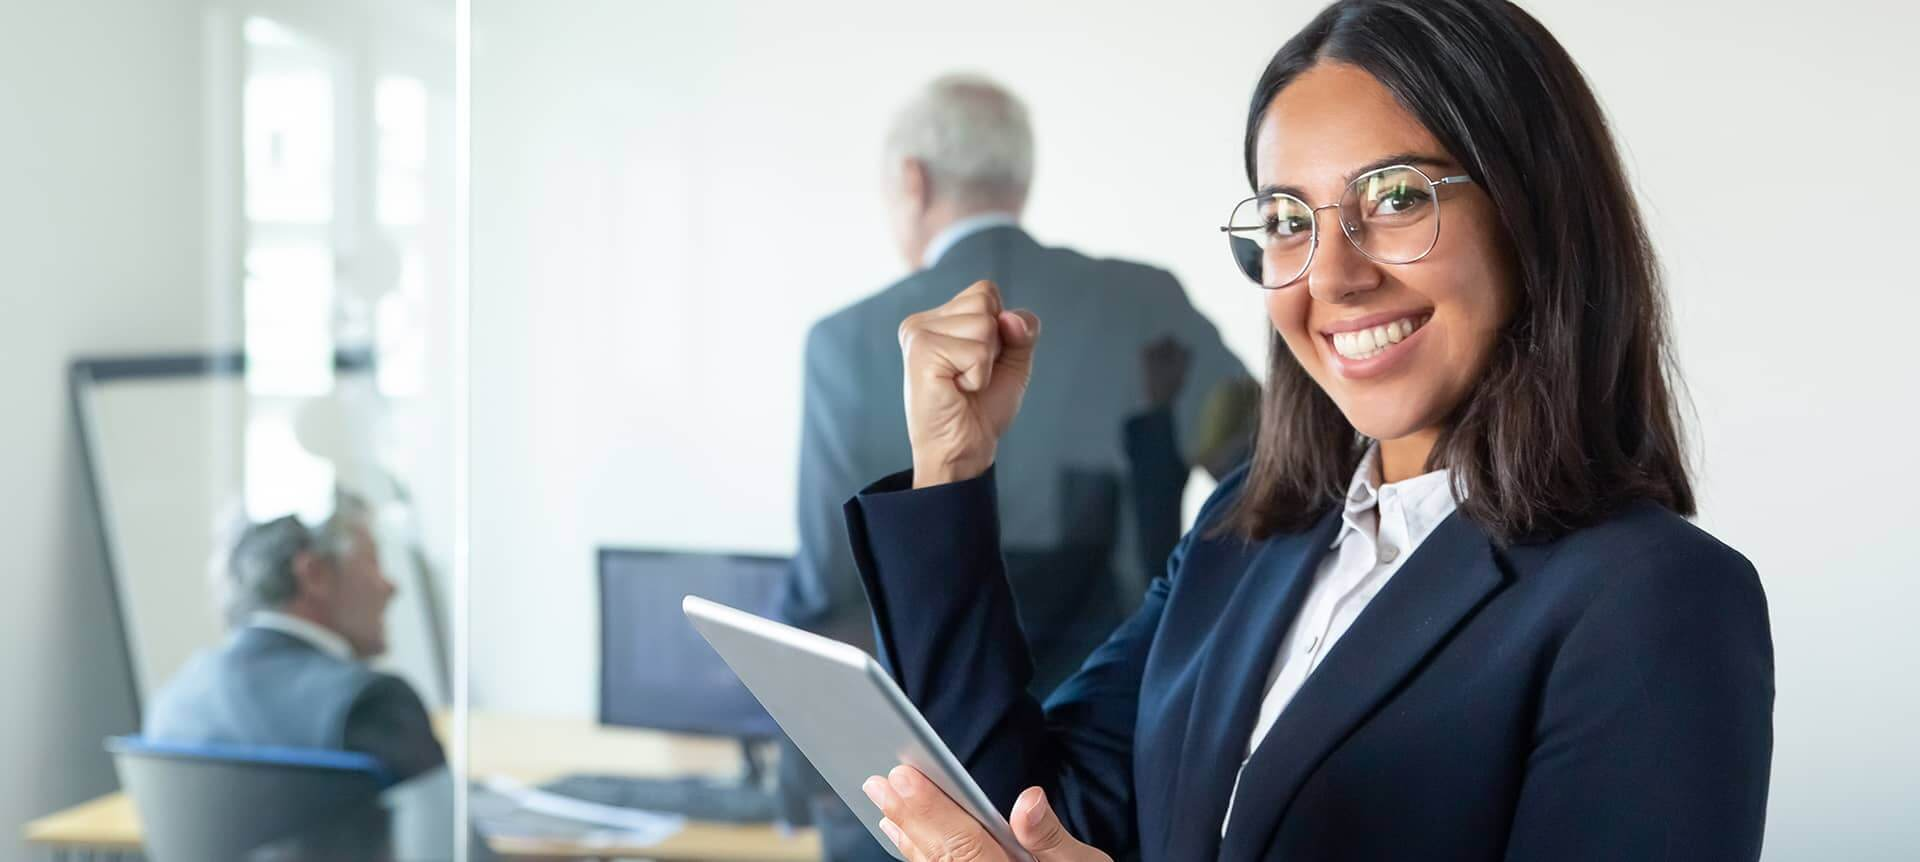 A recruiter wearing a suit and celebrating her success